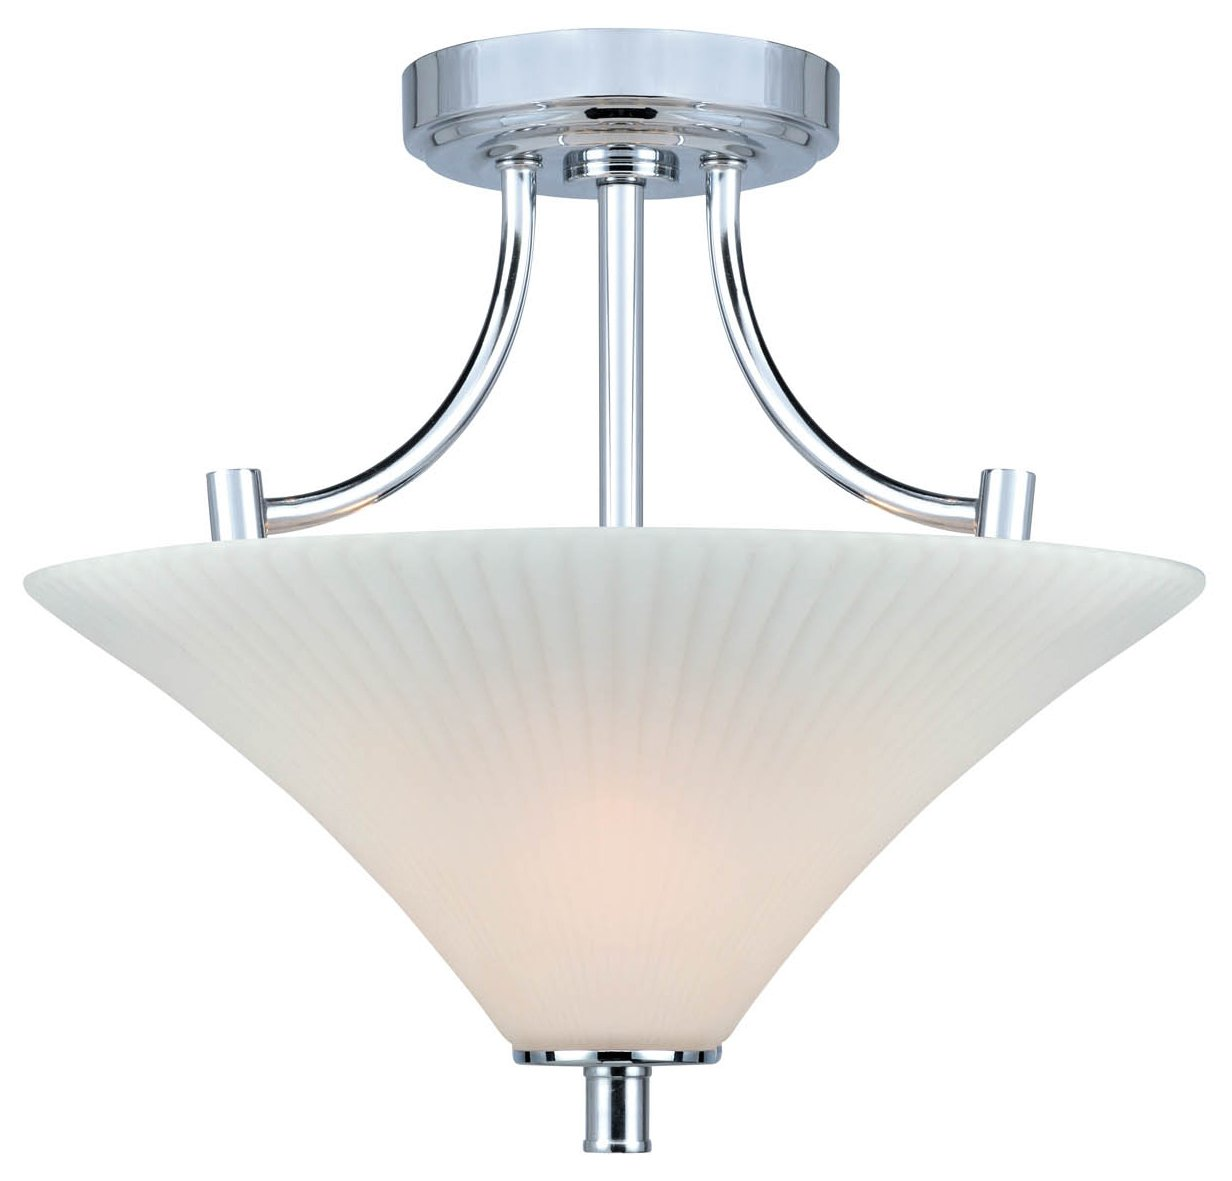 Lite source ls 5729 ragnar modern contemporary semi for Semi flush mount lighting modern